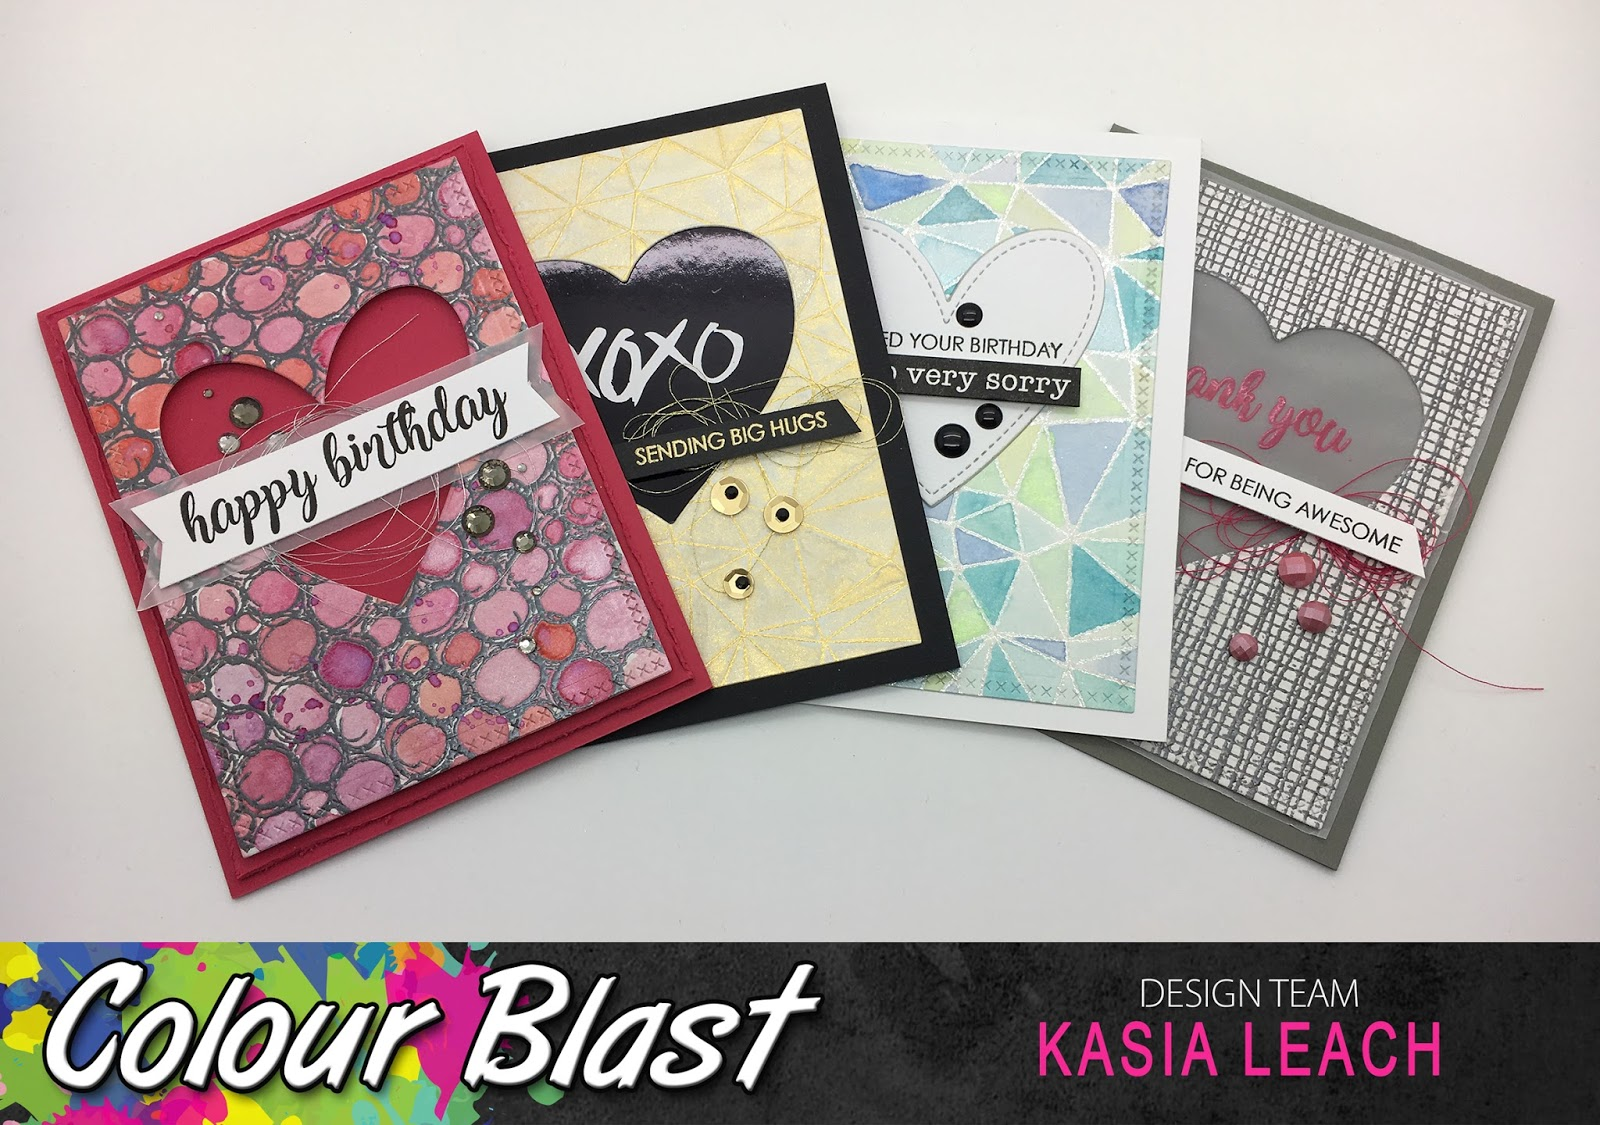 Birthday Cards Melbourne ~ Colour blast: clean & simple cards by kasia leach